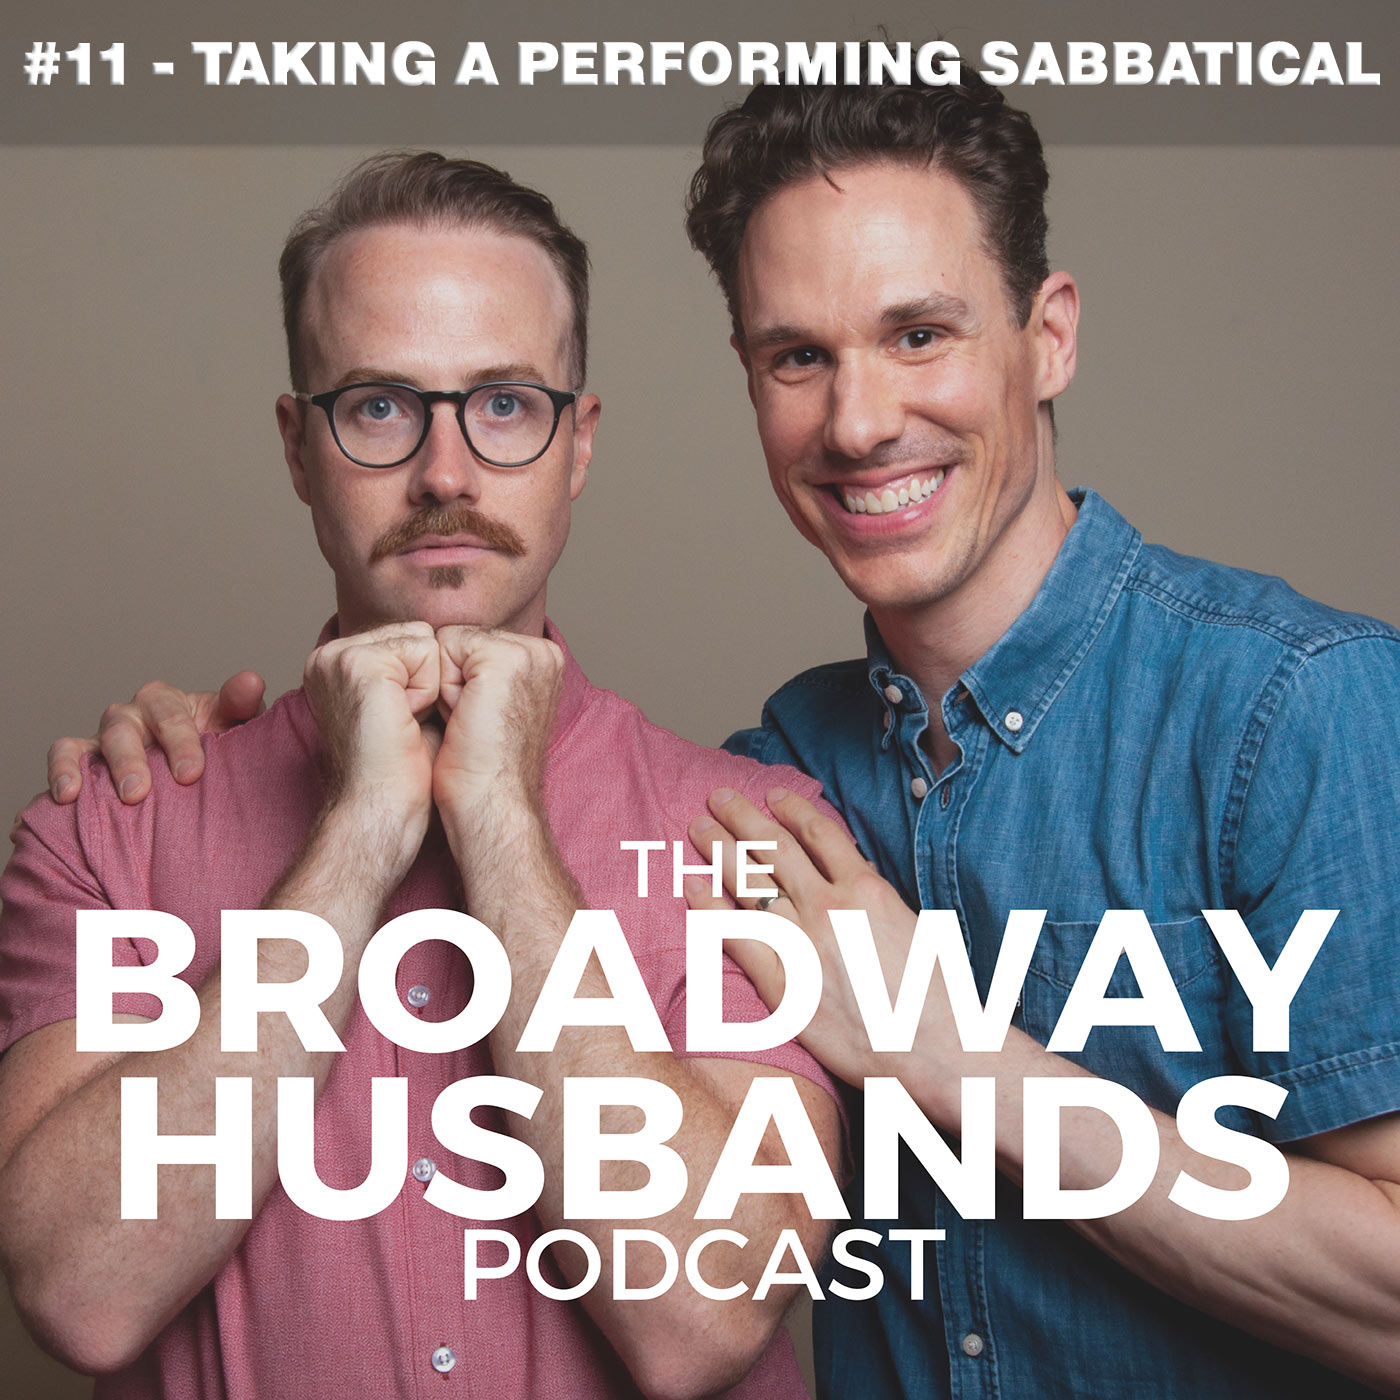 The Broadway Husbands Episode 11 Taking a Performing Sabbatical